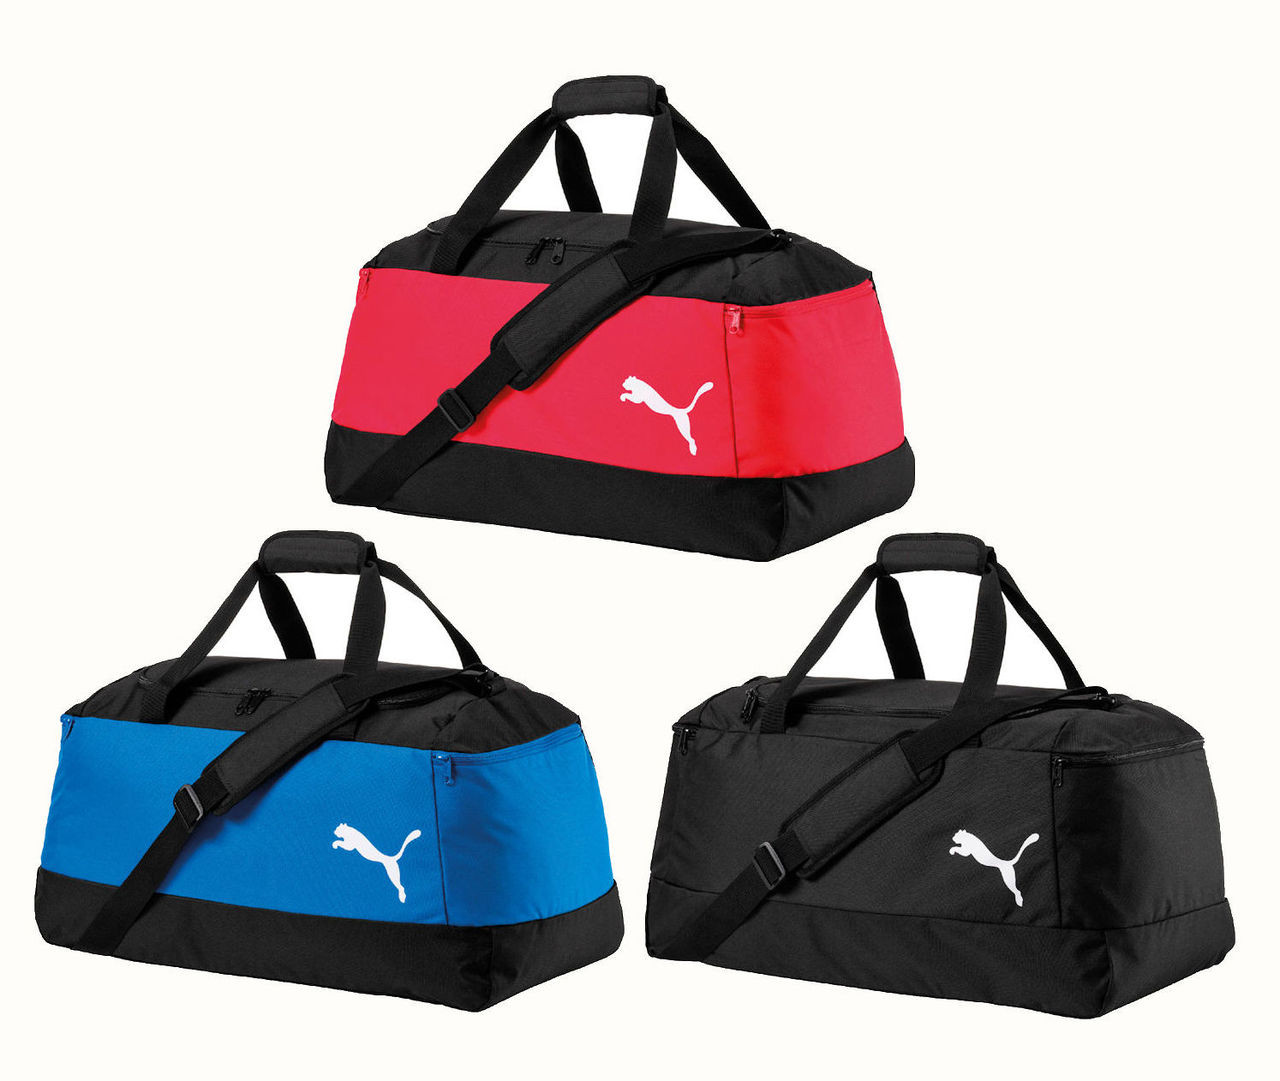 f6da4b0db443 Puma Pro Training II Medium Bag - Martial Art Shop